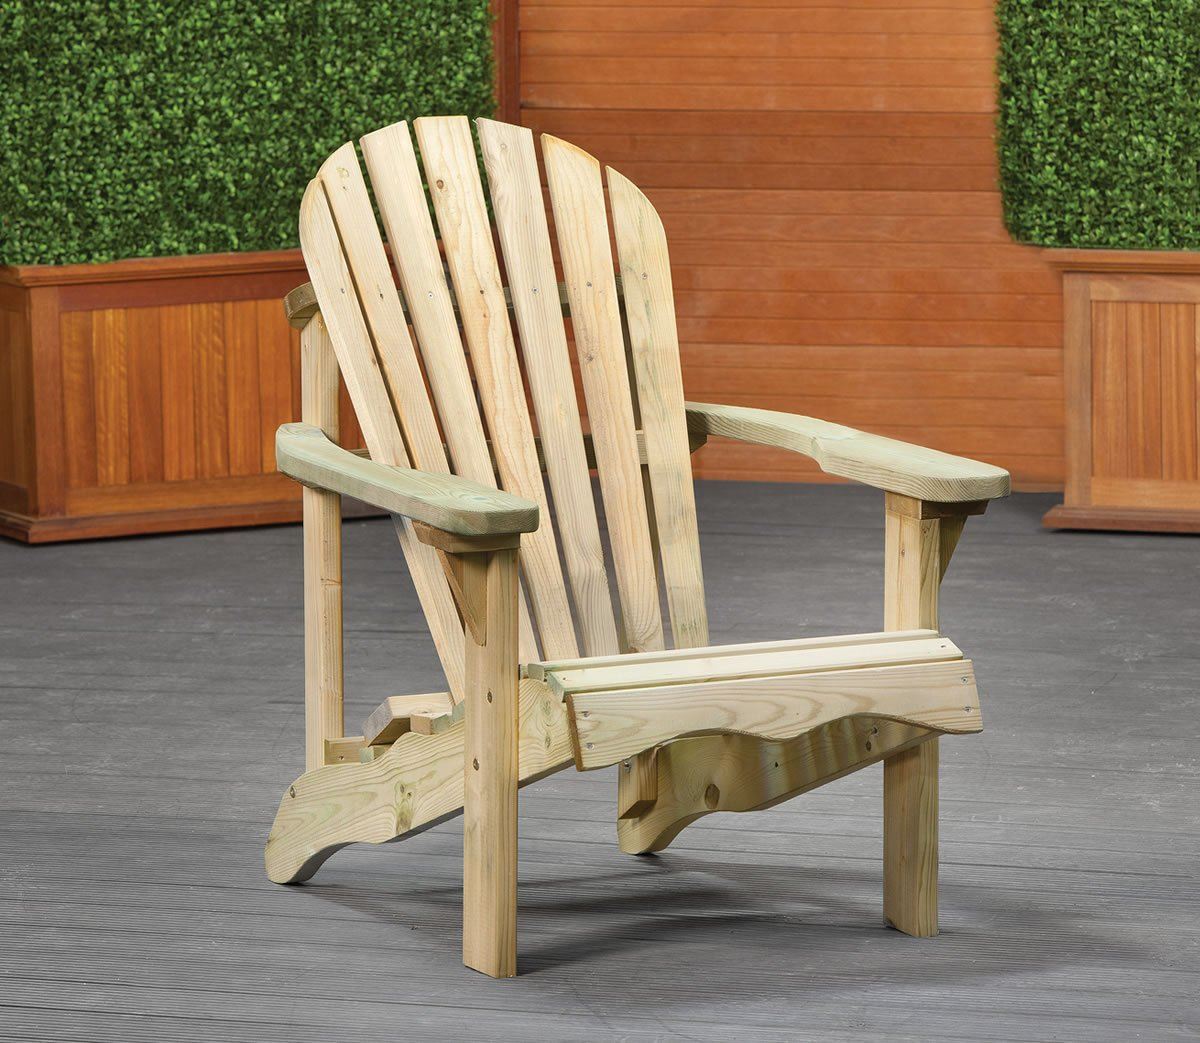 Miami Adirondack Garden Chair